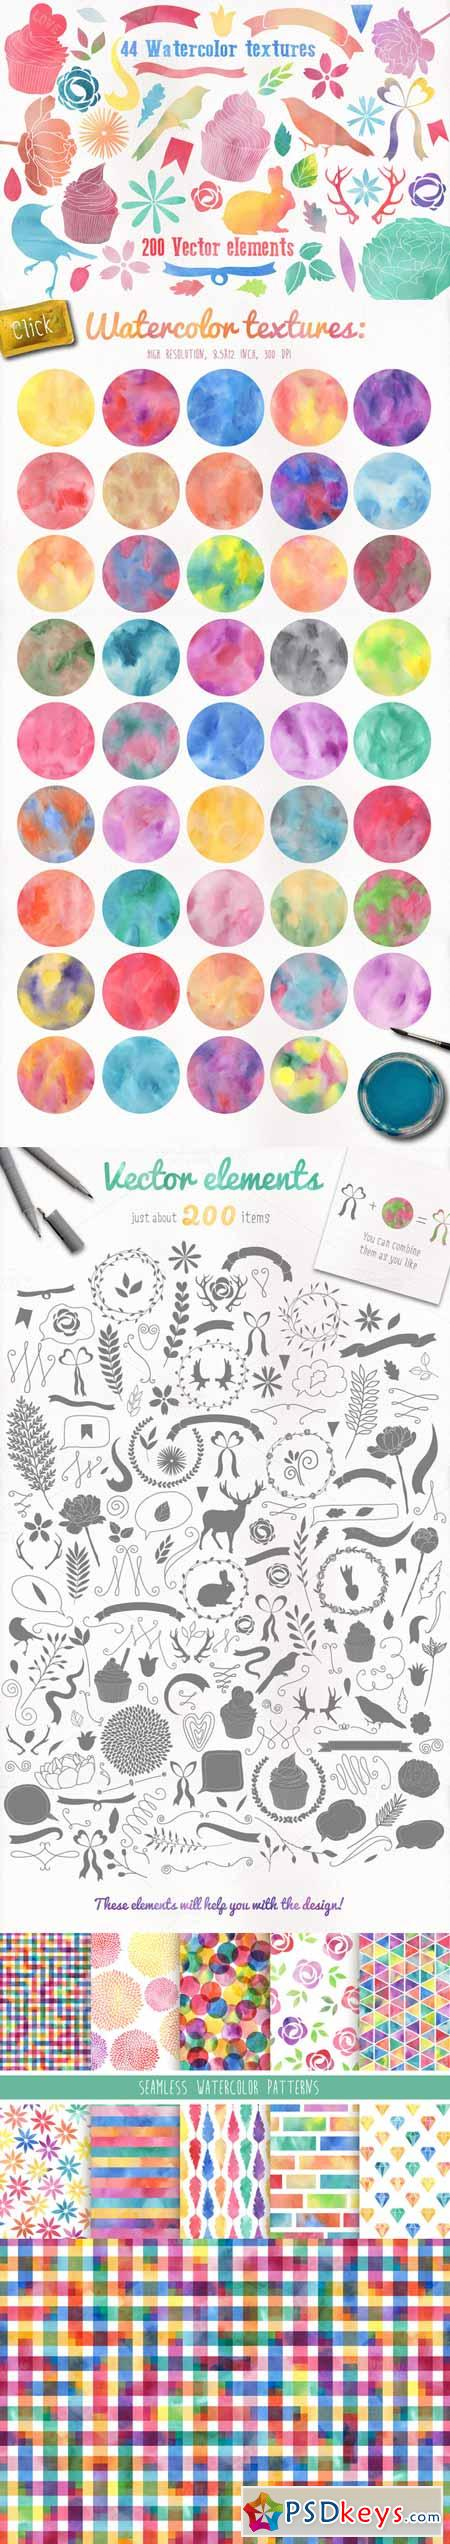 Watercolor pack + BONUS 105680